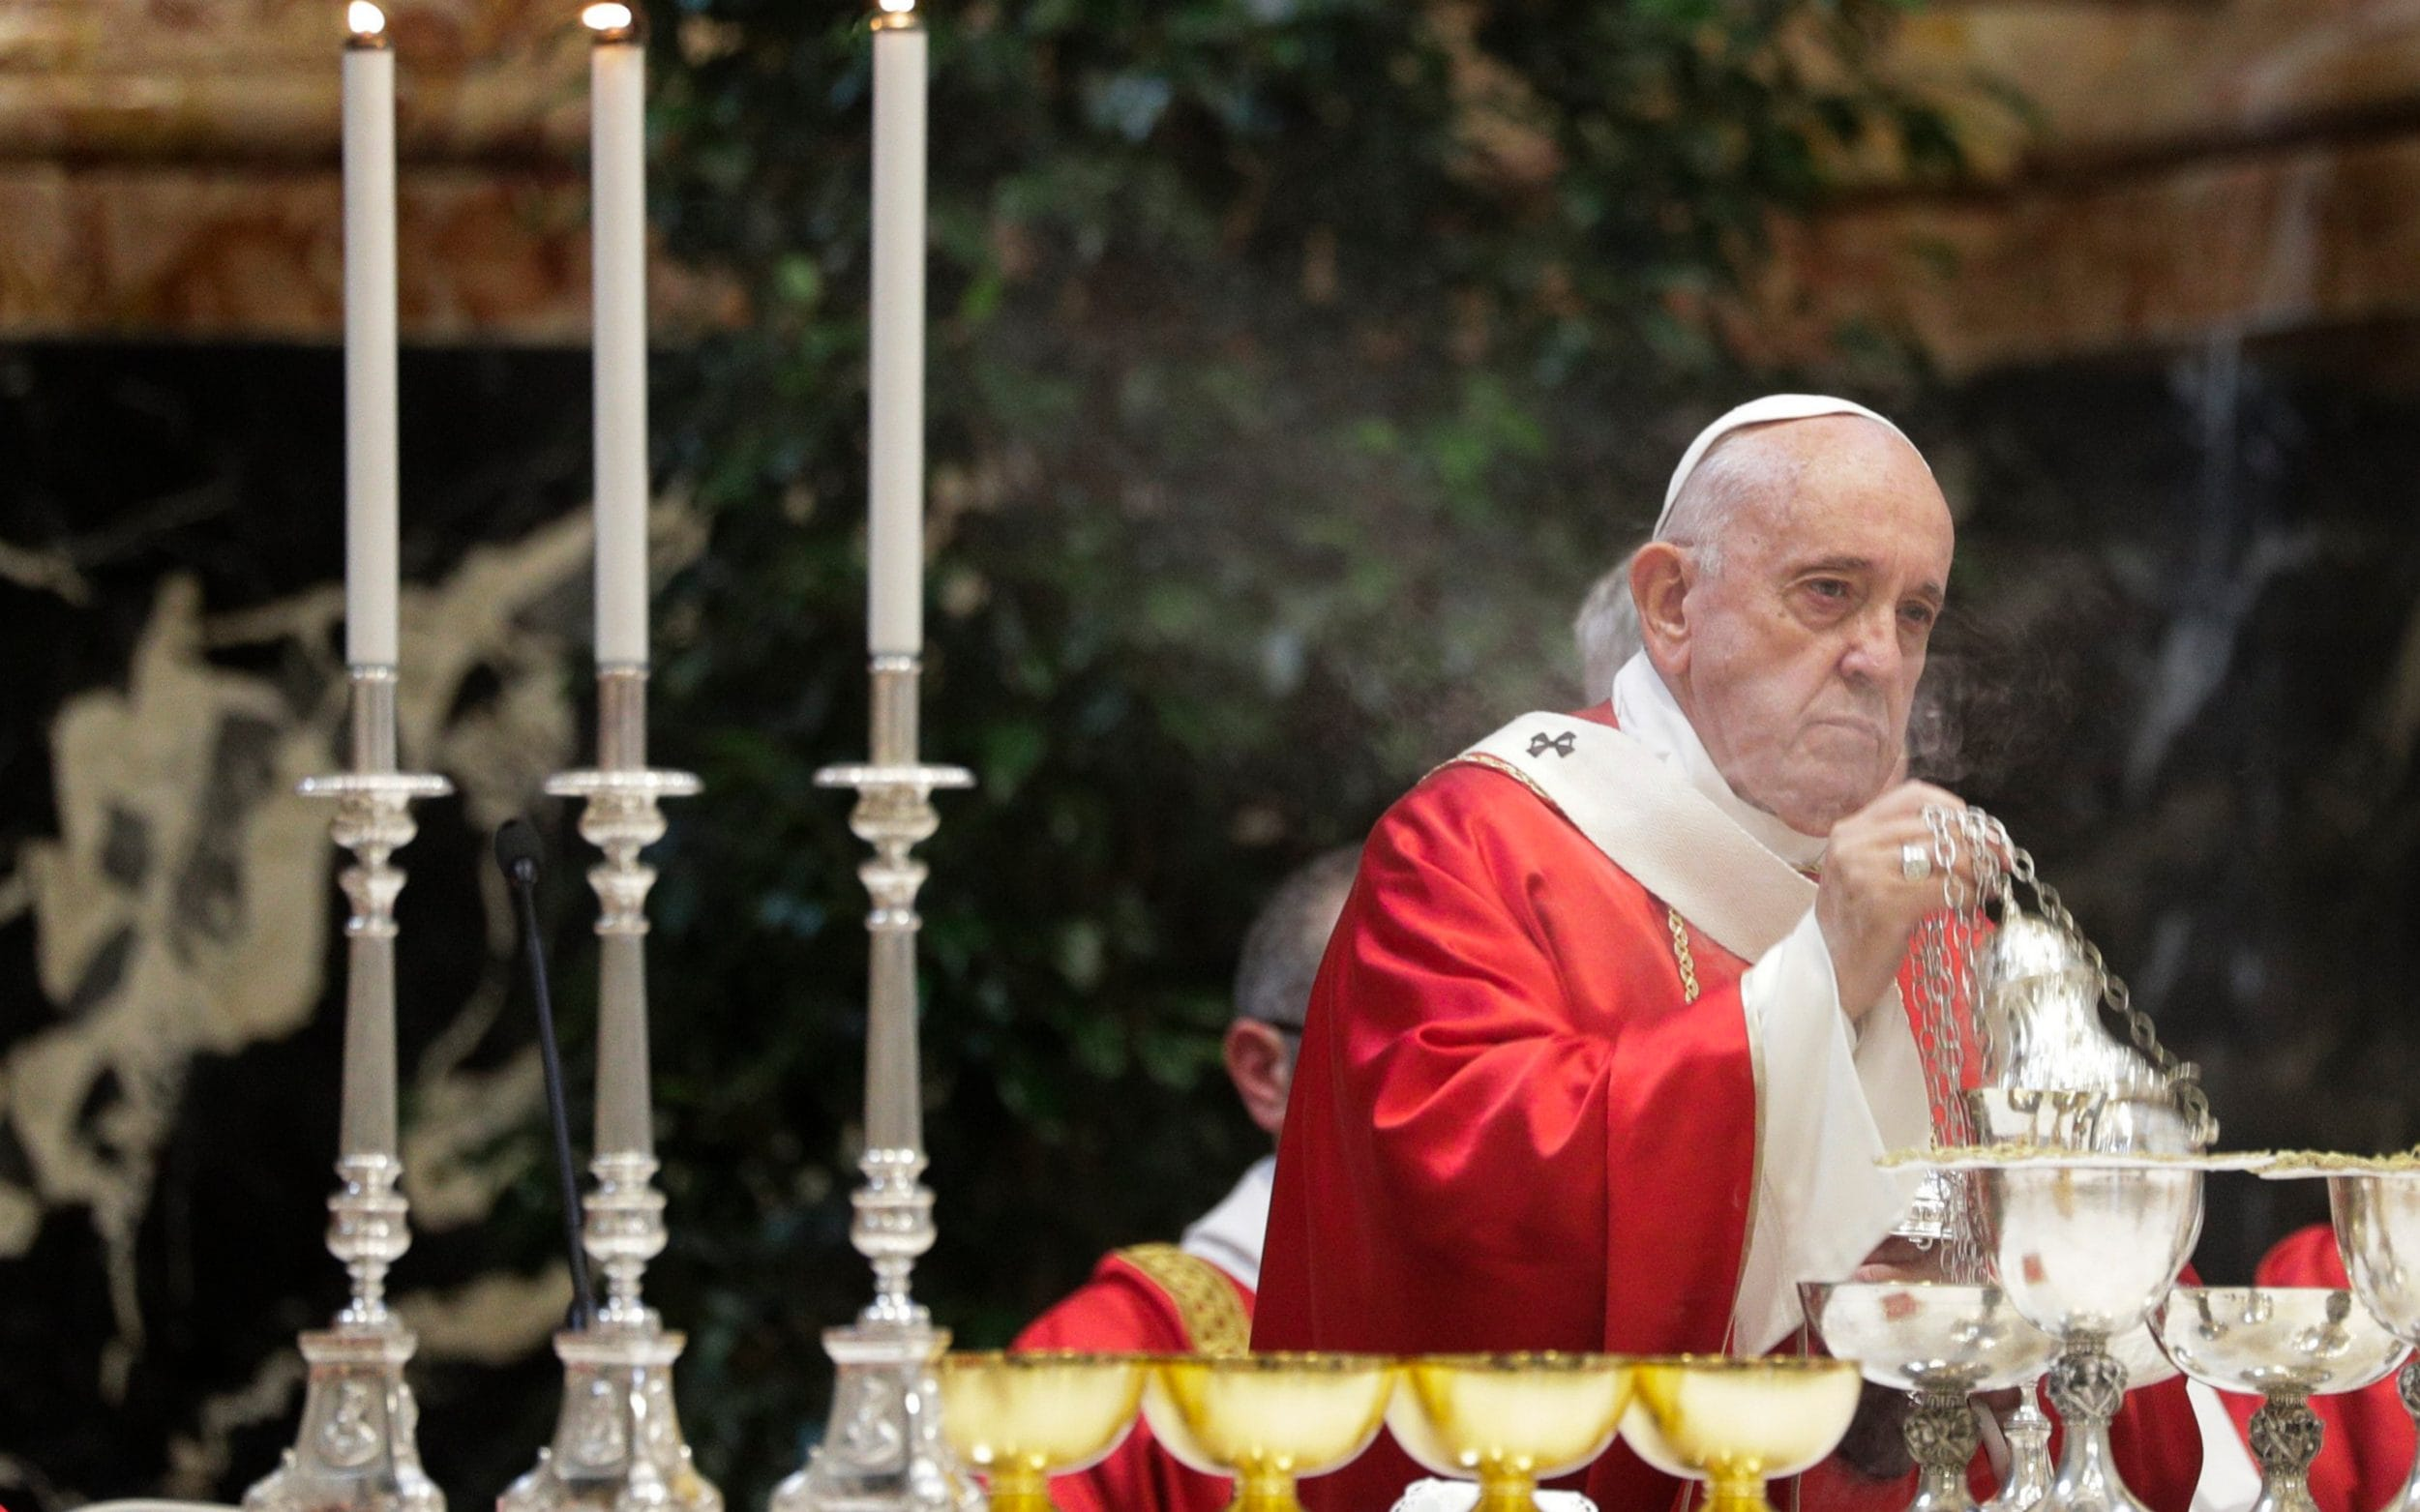 Vatican accused of harbouring bishop wanted for alleged sexual abuse of young priests